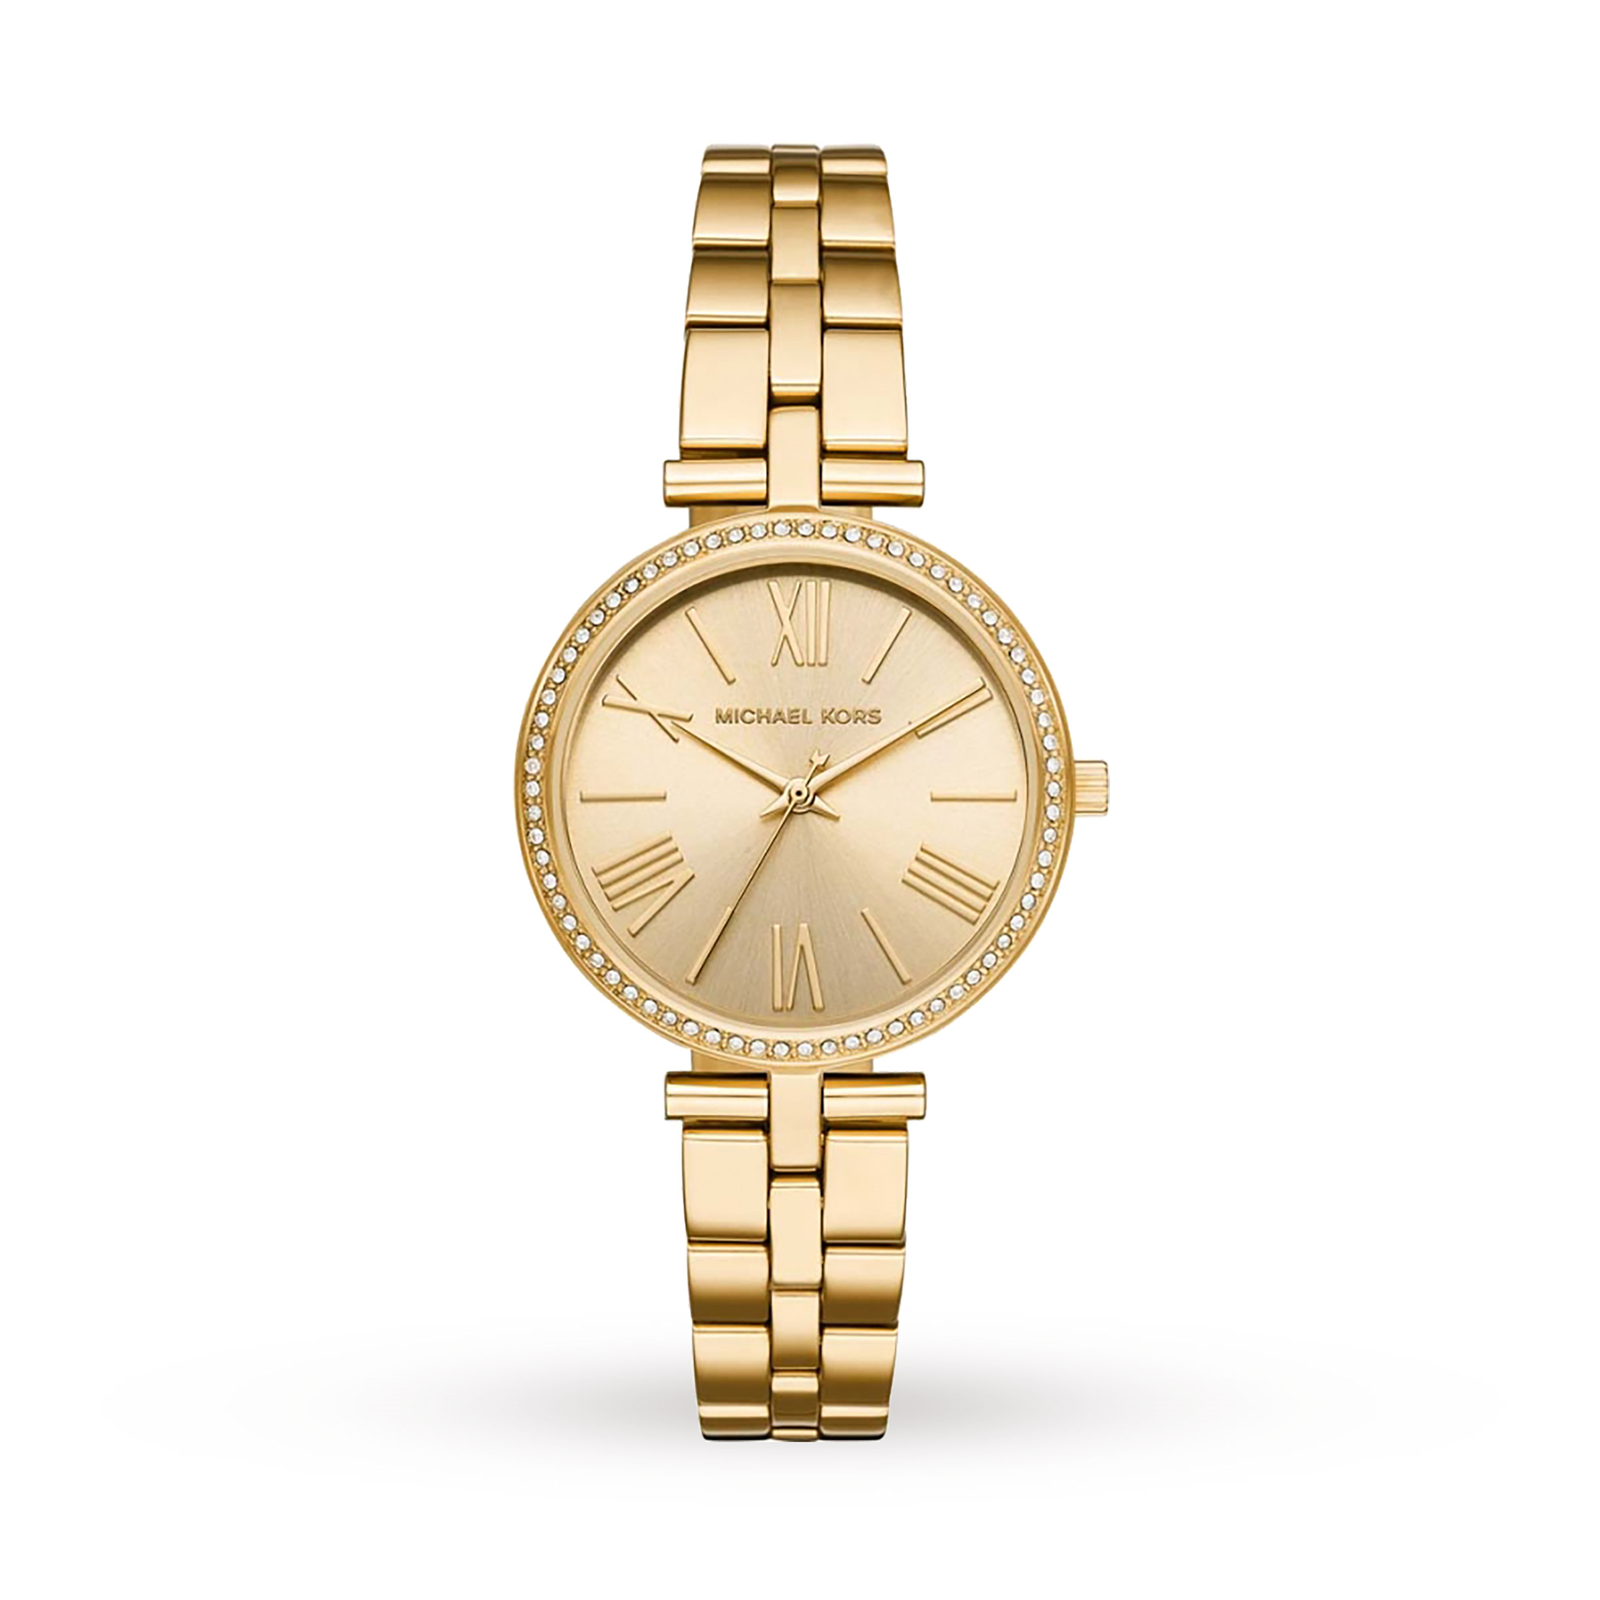 Michael Kors Ladies Watch MK3903.